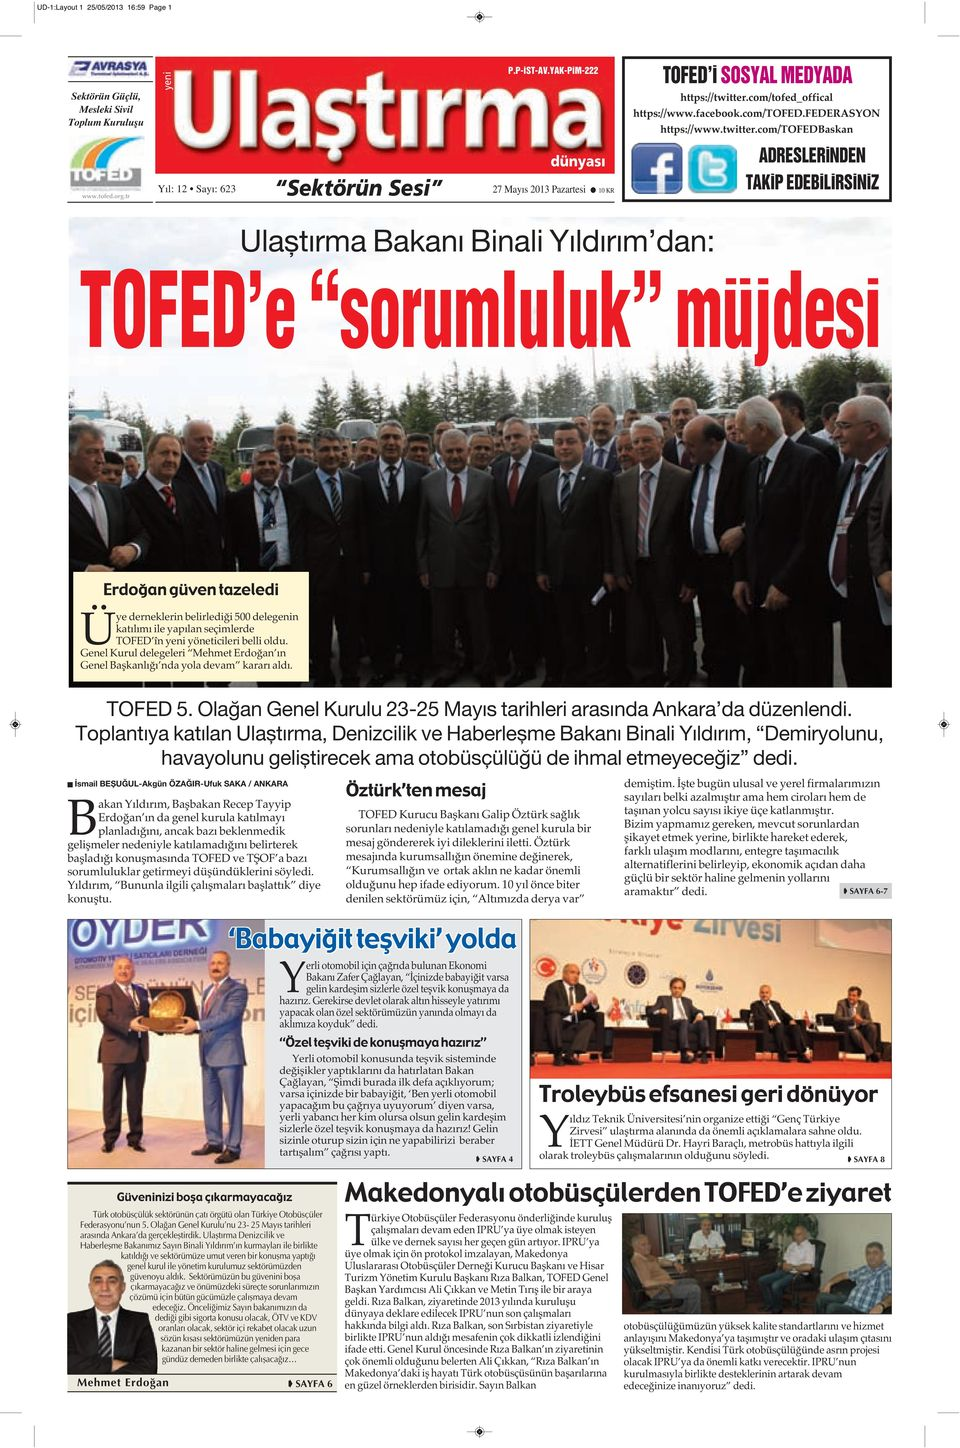 com/tofed_offical https://www.facebook.com/tofed.federasyon https://www.twitter.